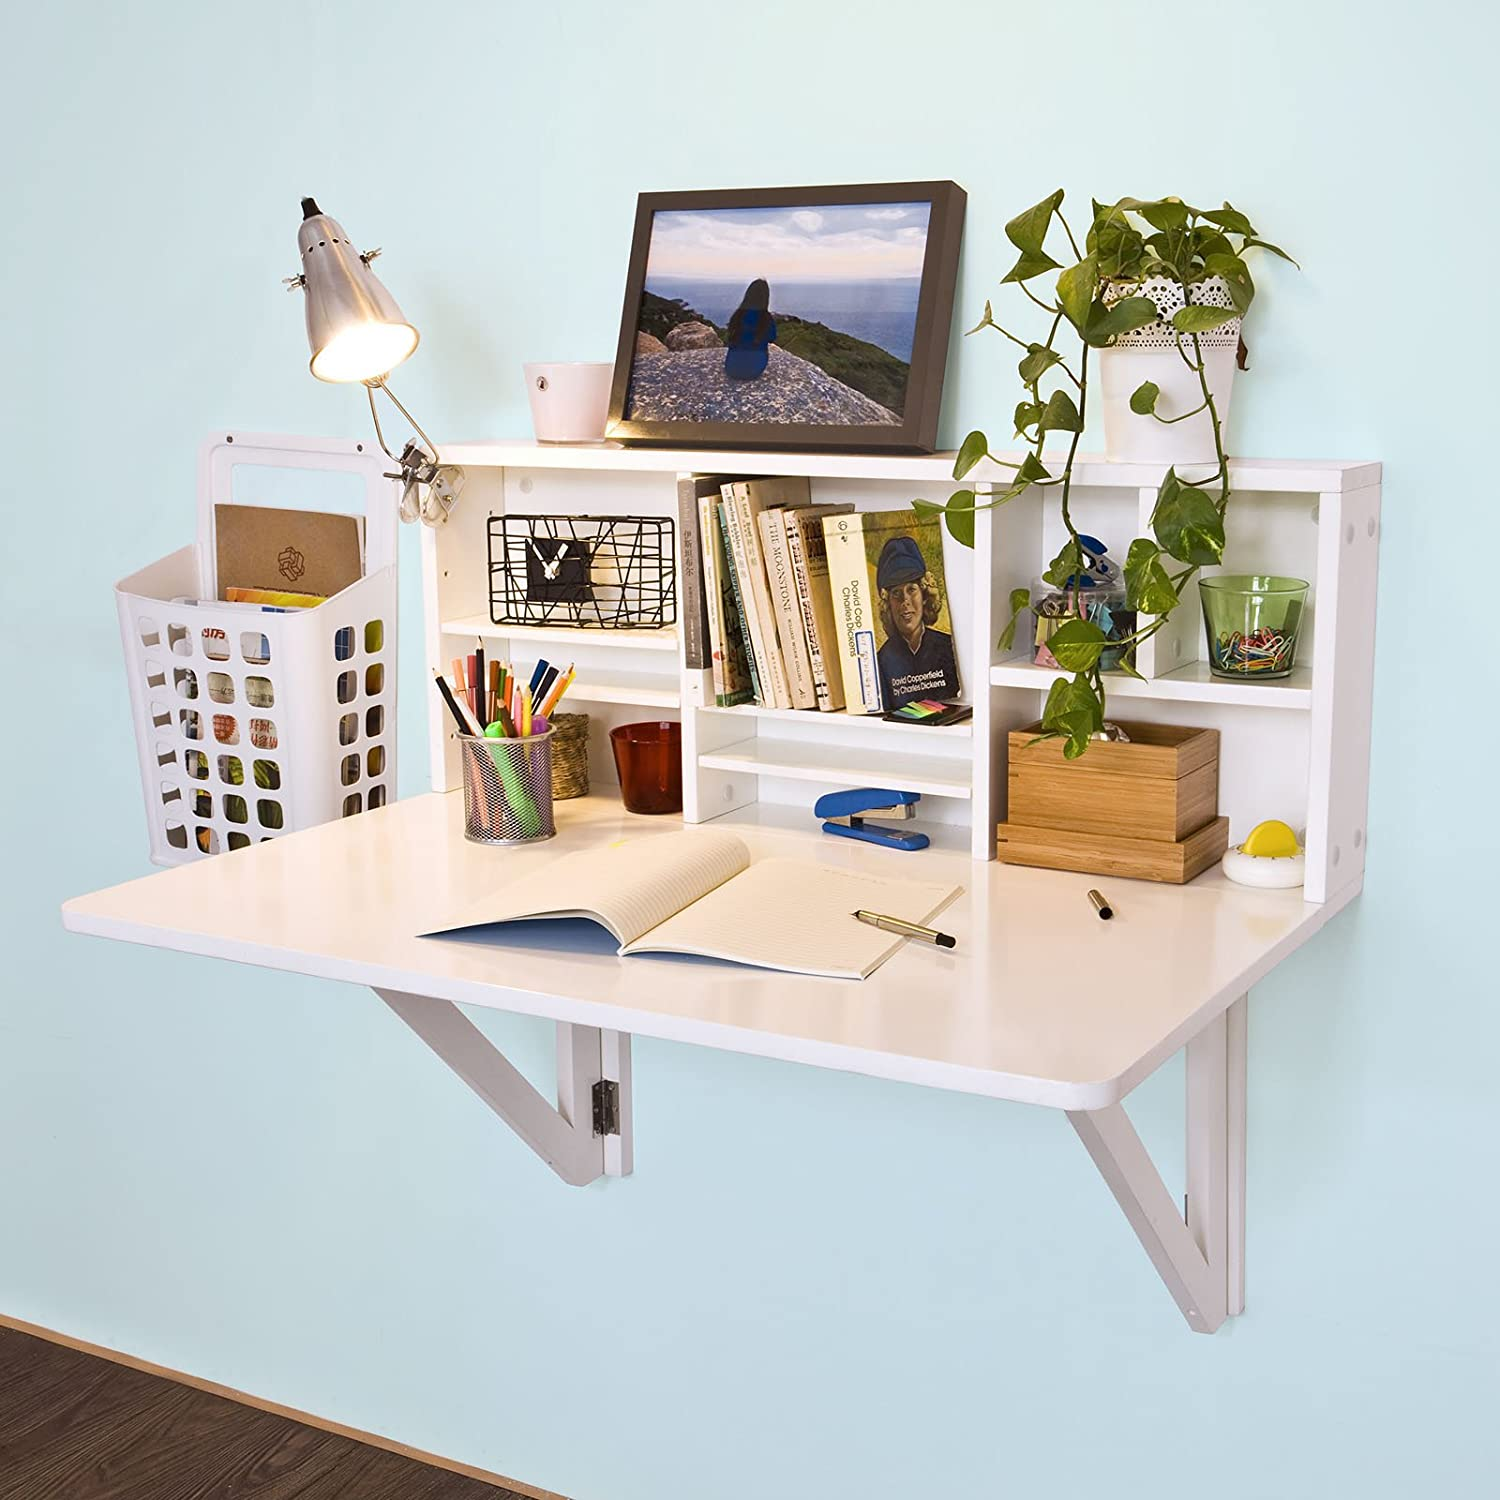 Haotian FWT07-W,White Folding Wooden Wall-Mounted Drop-Leaf Table Desk Integrated with Storage Shelves